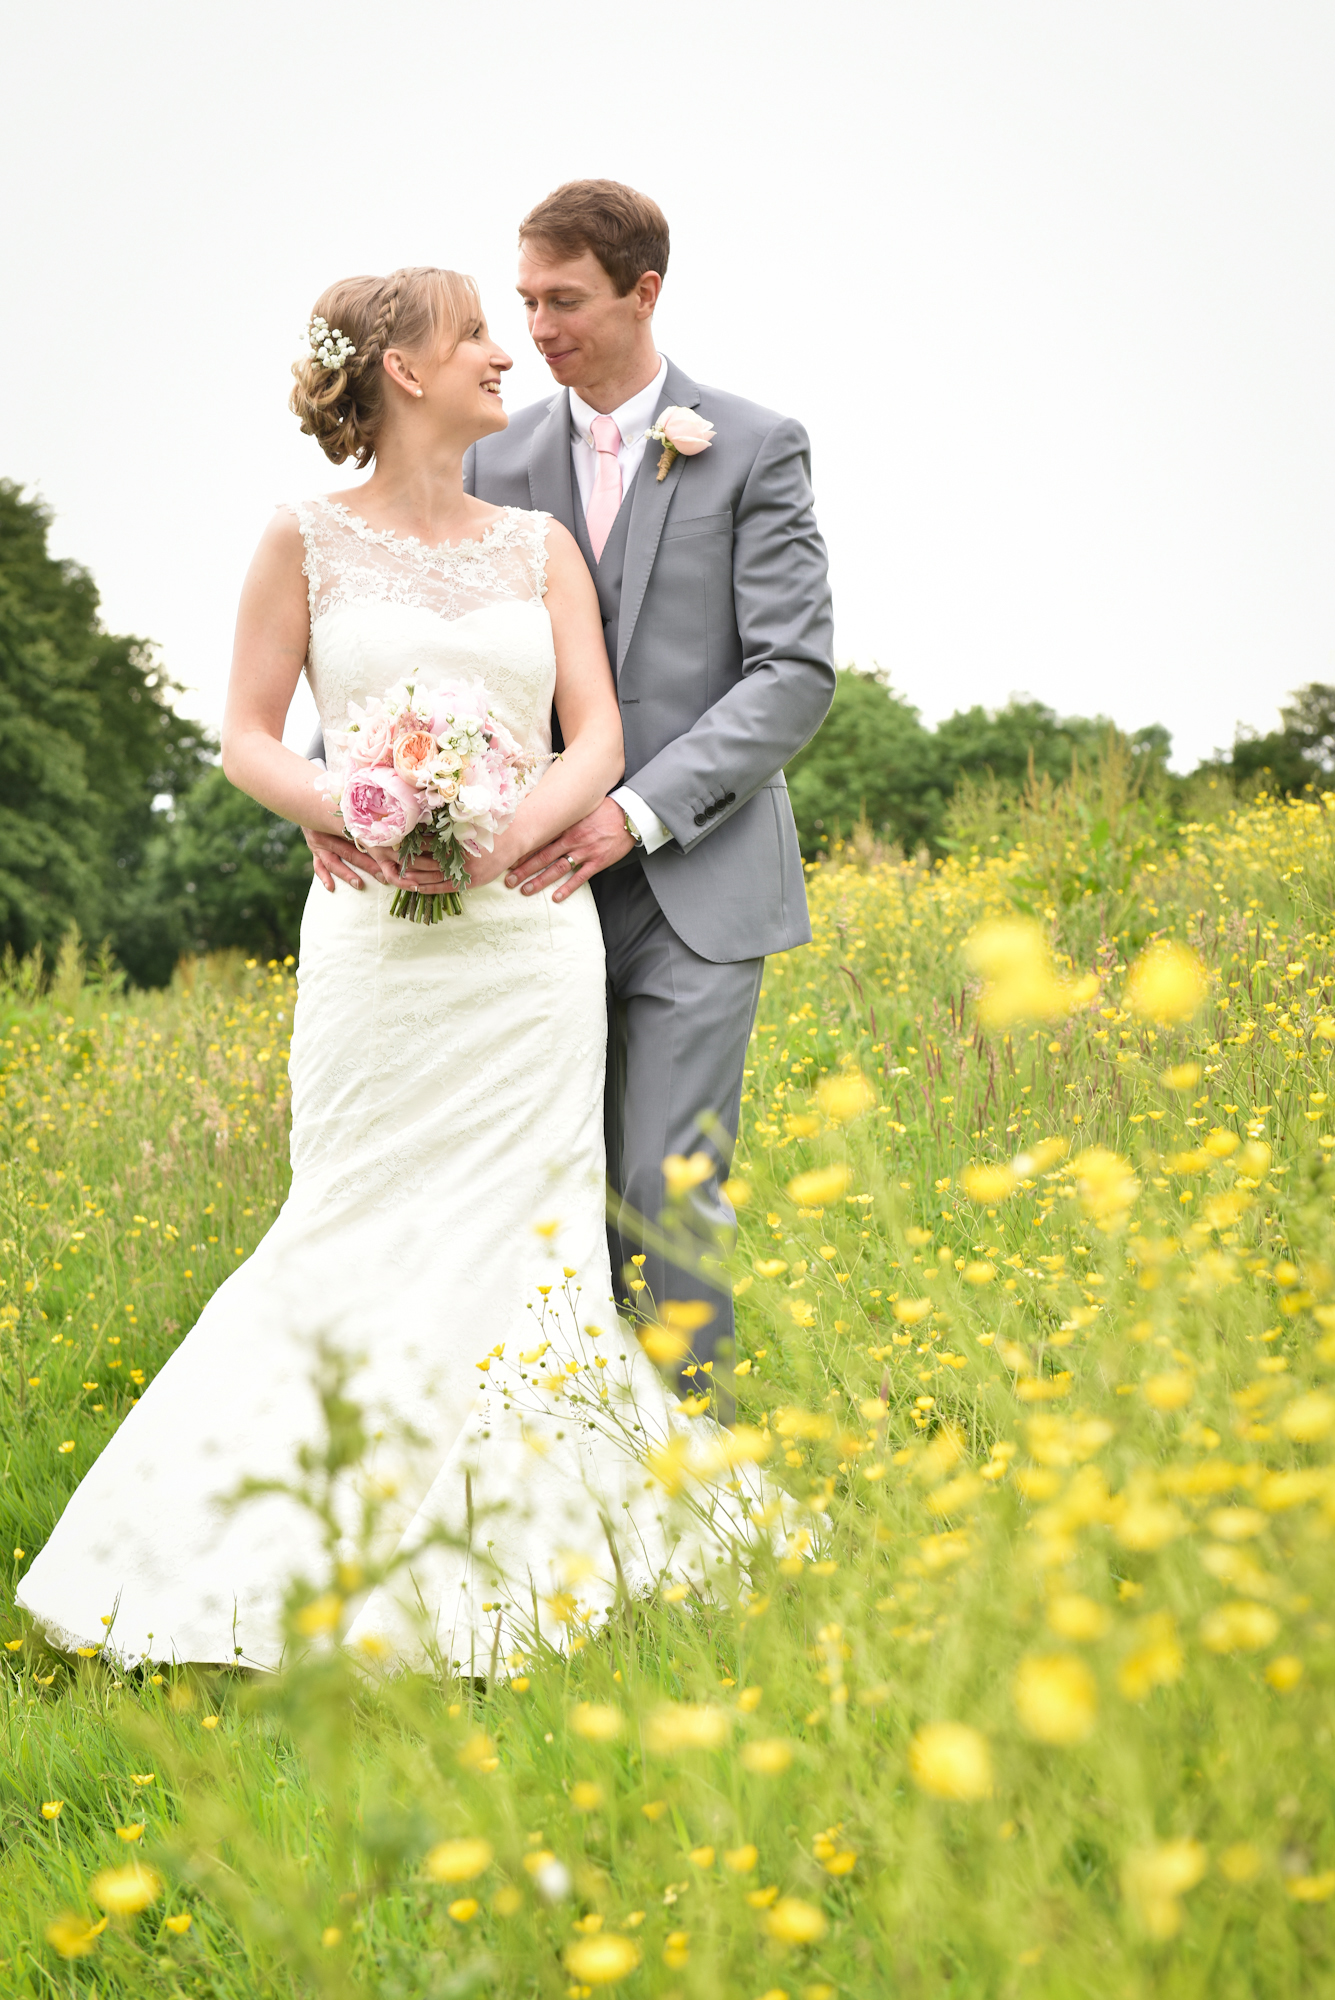 Wedding portrait in a field